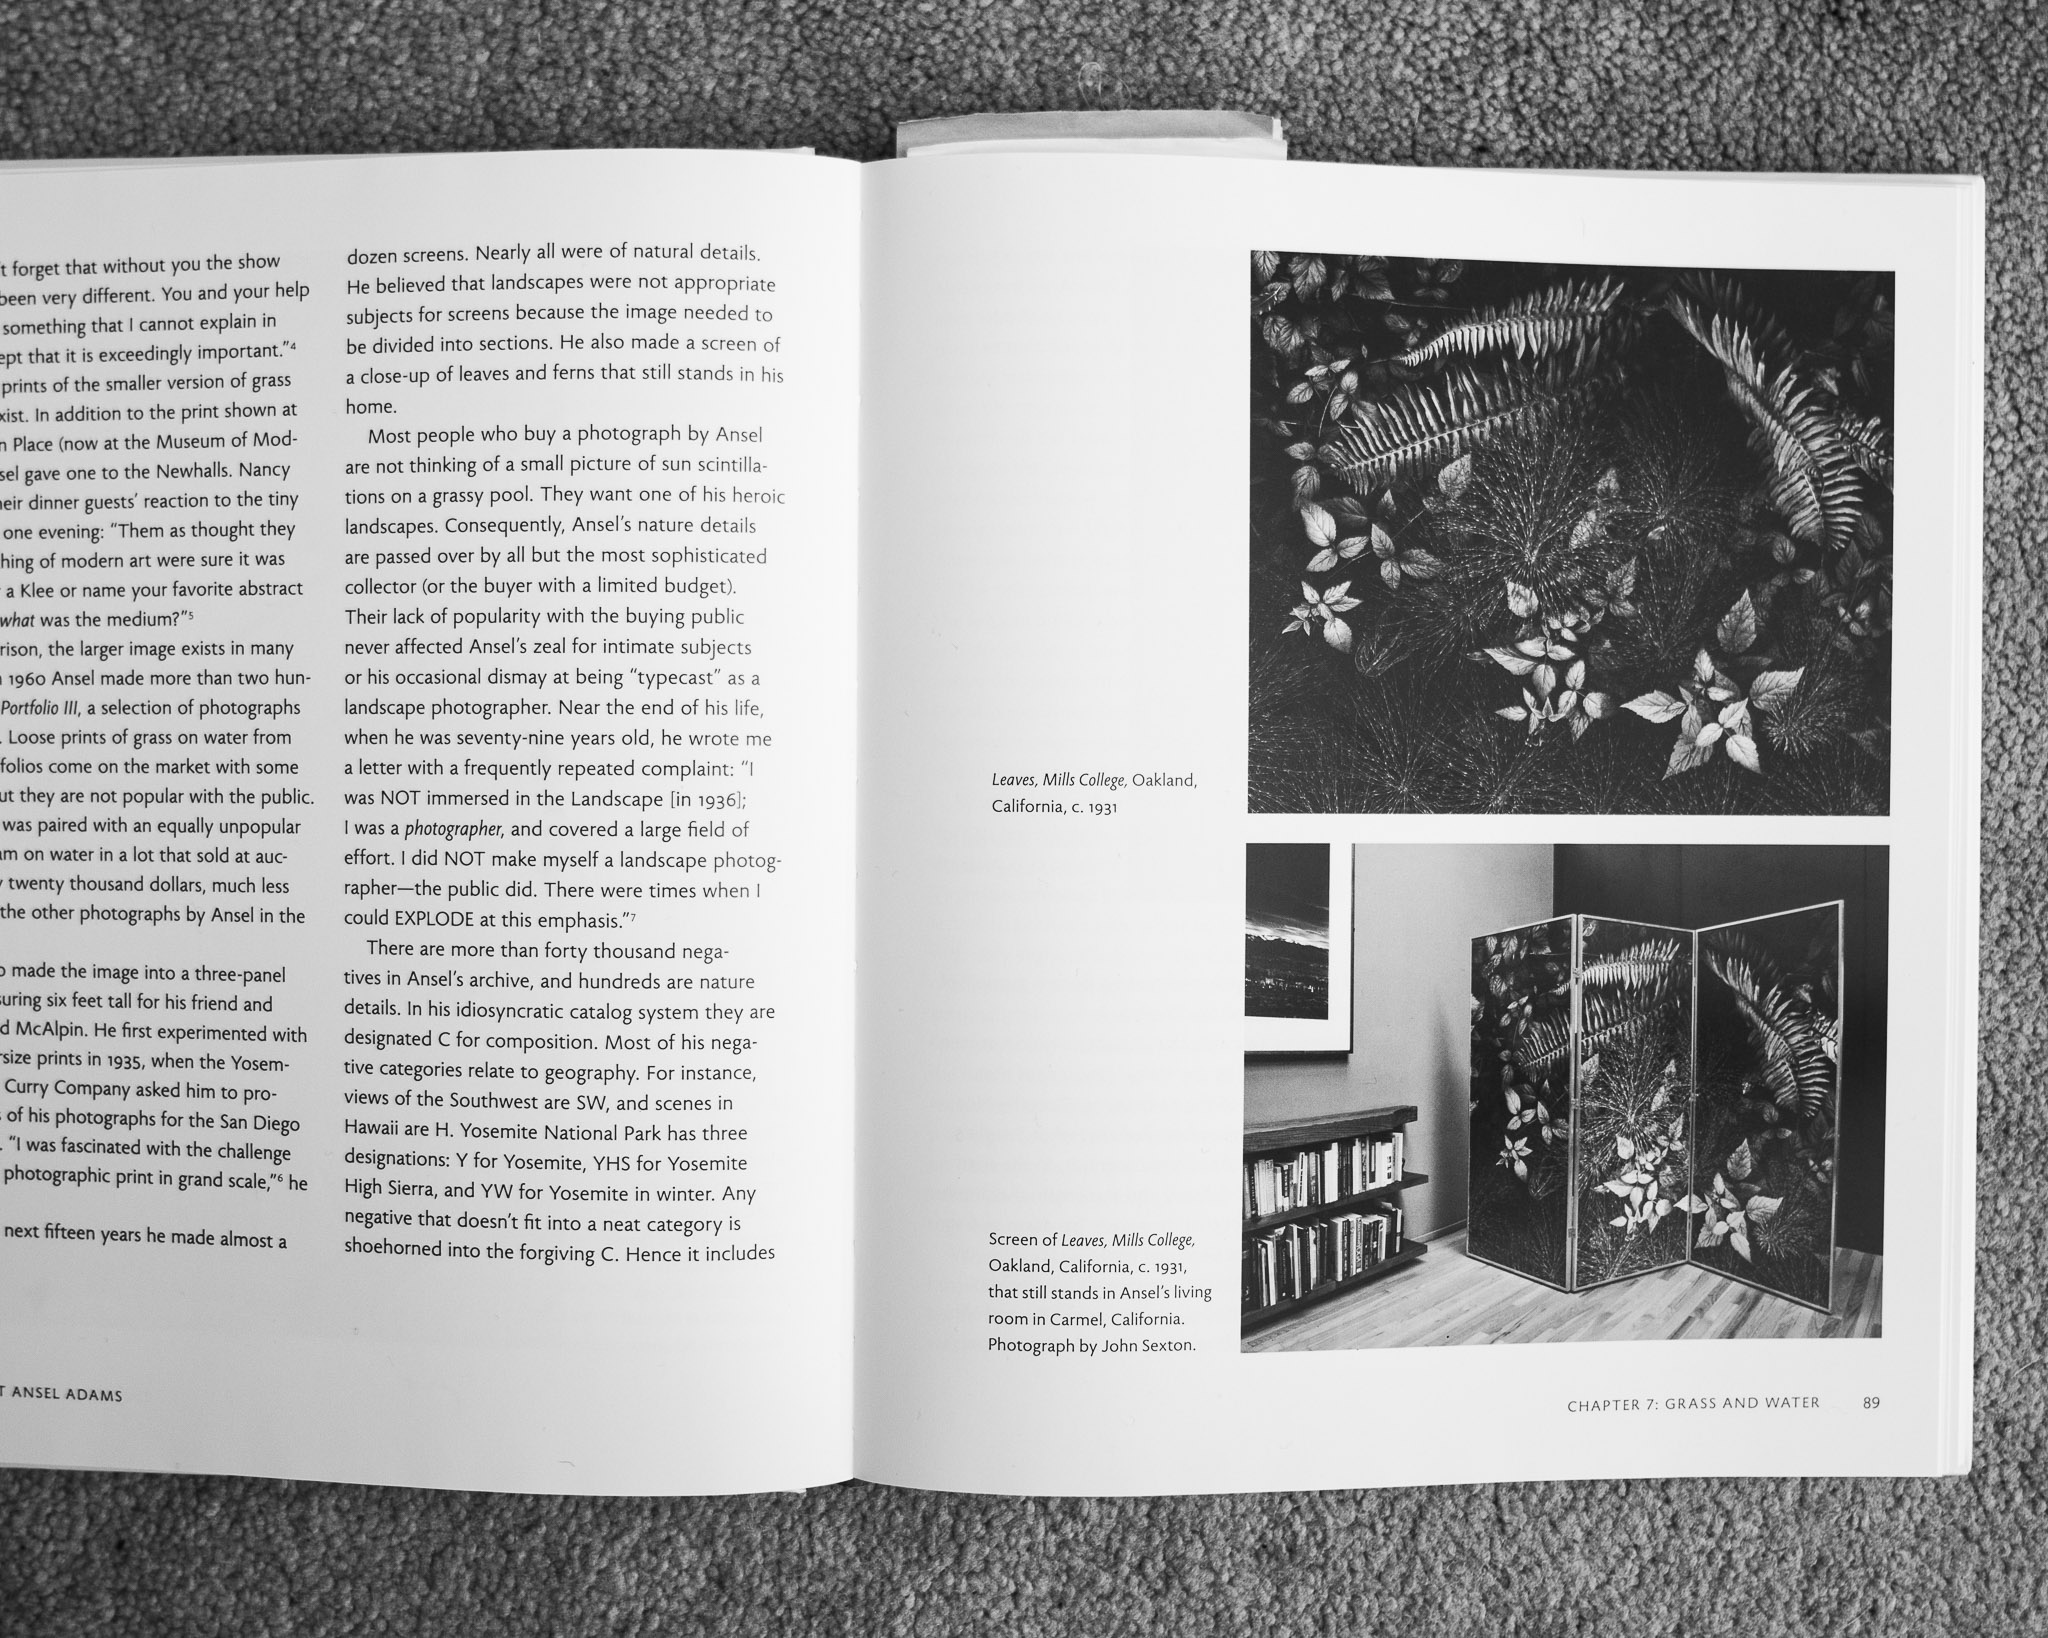 """A black and white photograph of a page from book of the work of Ansel Adams, published by Little Brown Co. that highlights a photograph Ansel had made of Leaves on the ground and turned into a three-panel privacy screen, which inspired fine artist Cody Schultz to create his piece, """"Upon The Forest Floor."""""""